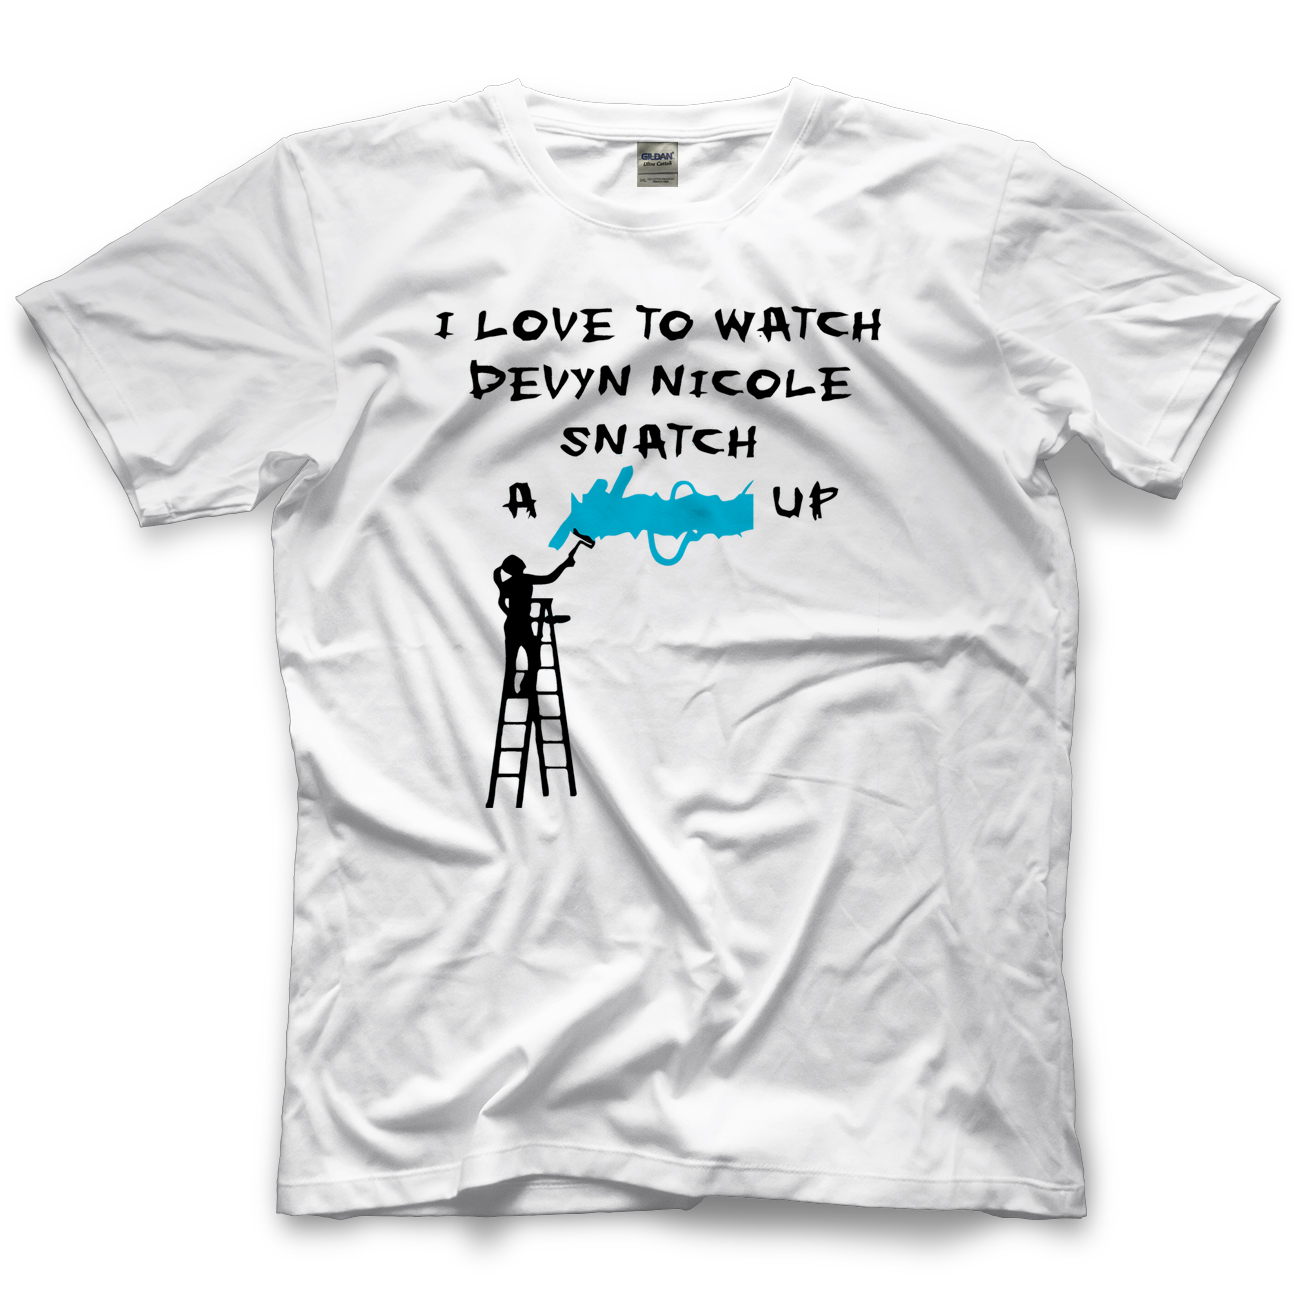 Devyn Nicole Snatch Em Up T-shirt